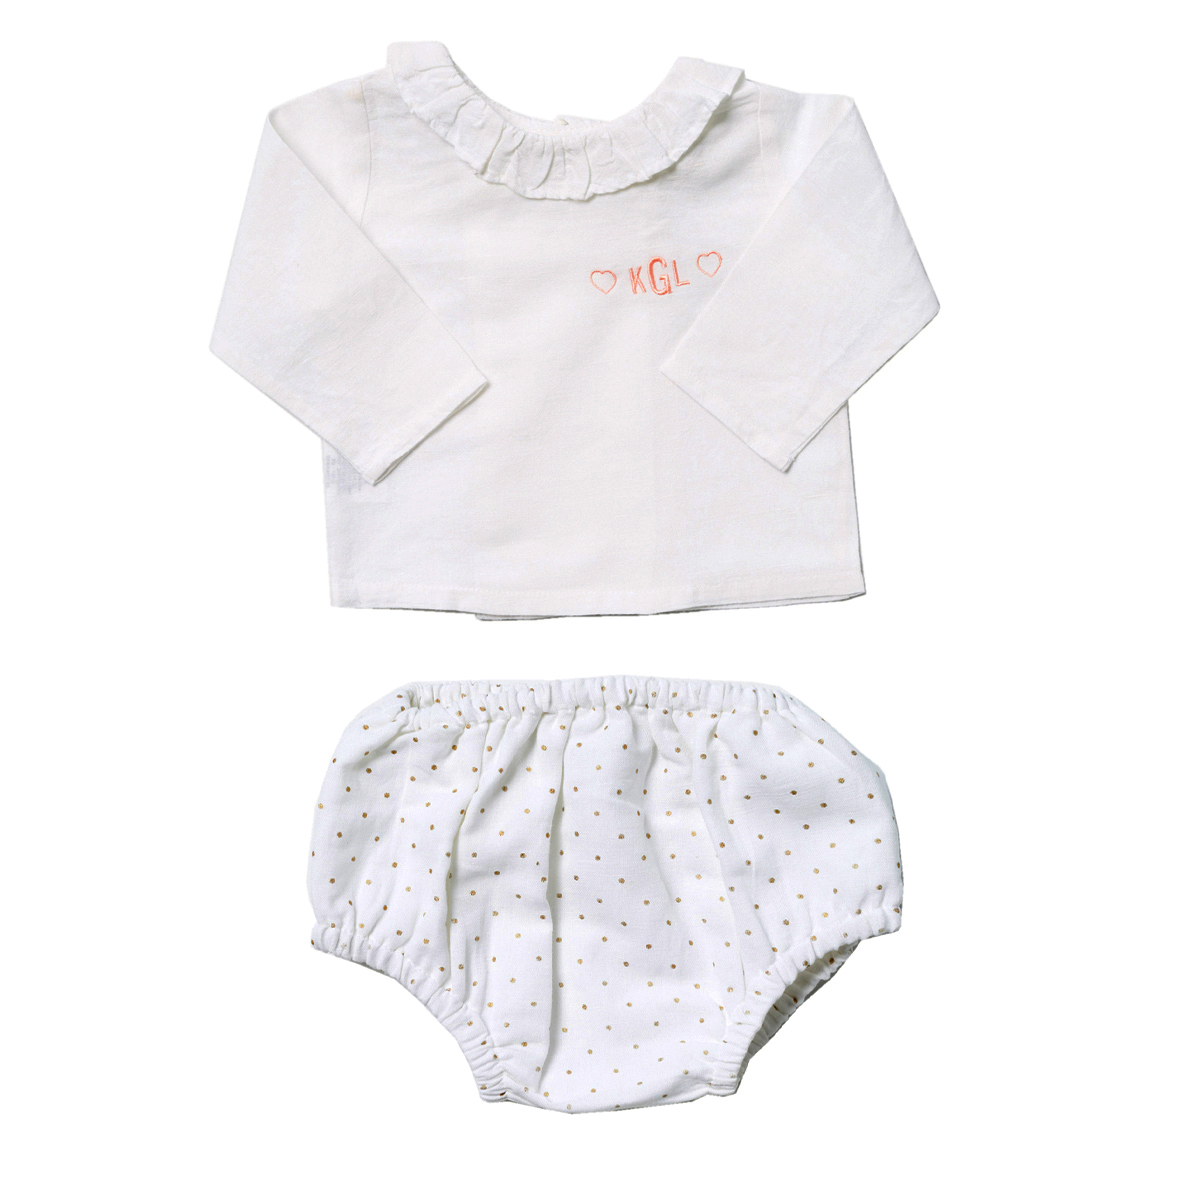 Louelle Personalized Valentine Outfit Set - Gold Dot